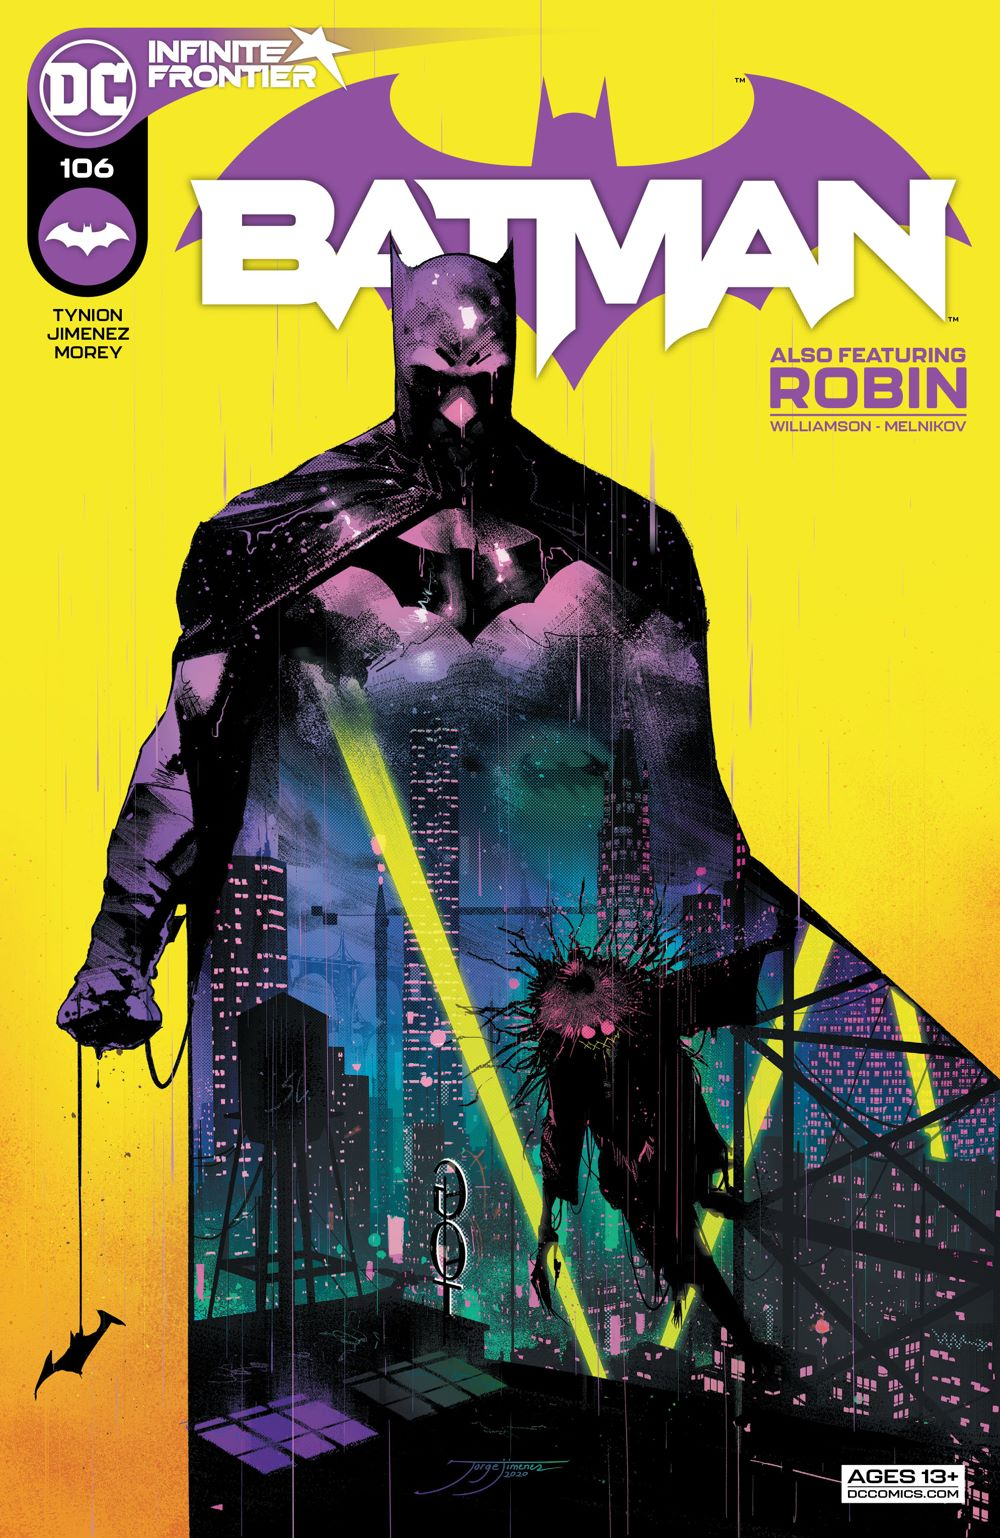 BM_106-1_603721c81e39b3.01057189 ComicList Previews: BATMAN #106